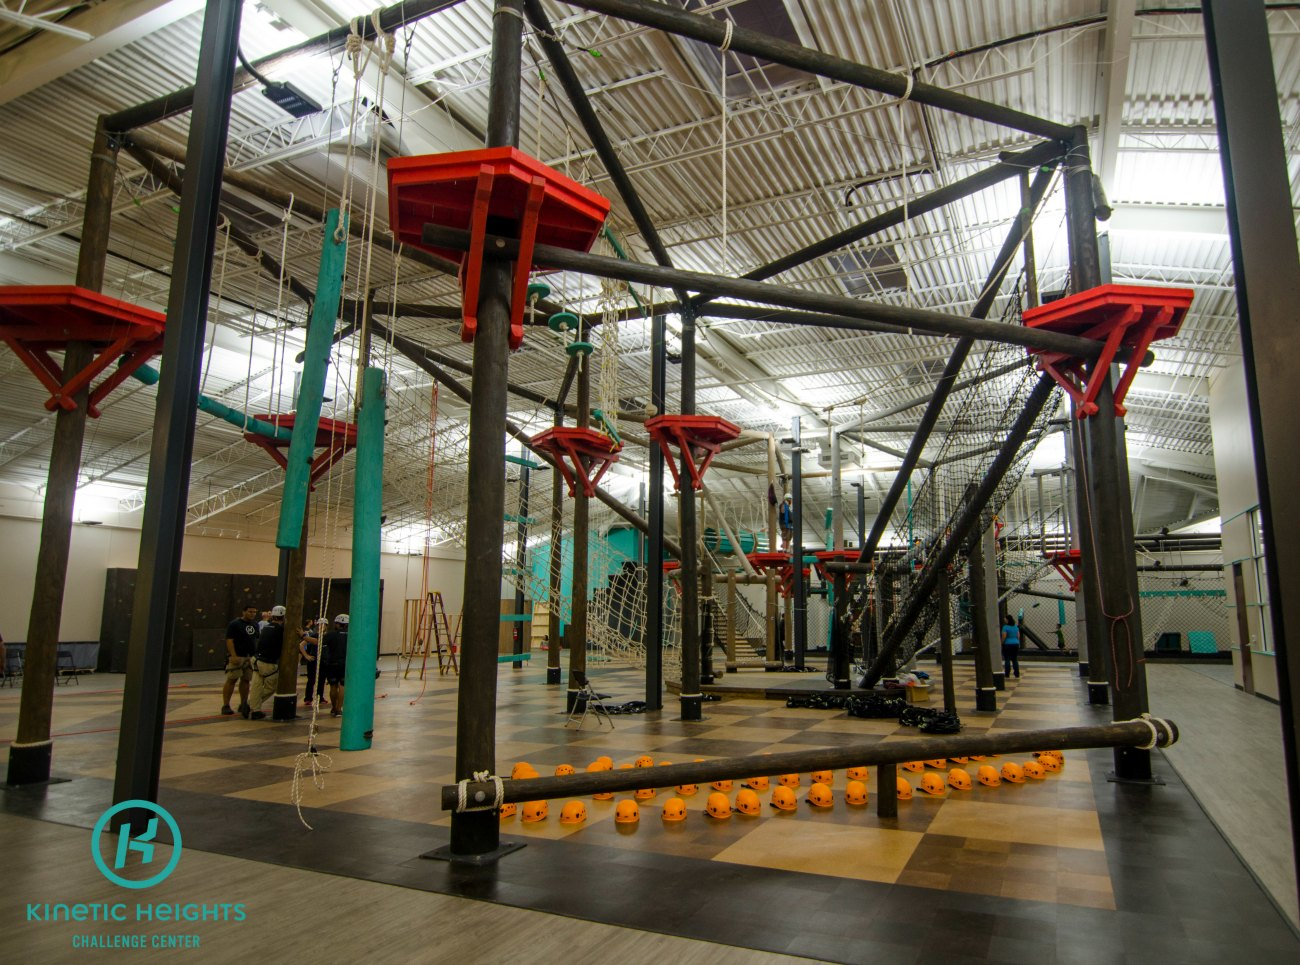 This 22,000-square-foot indoor obstacle course opens this weekend in south Charlotte